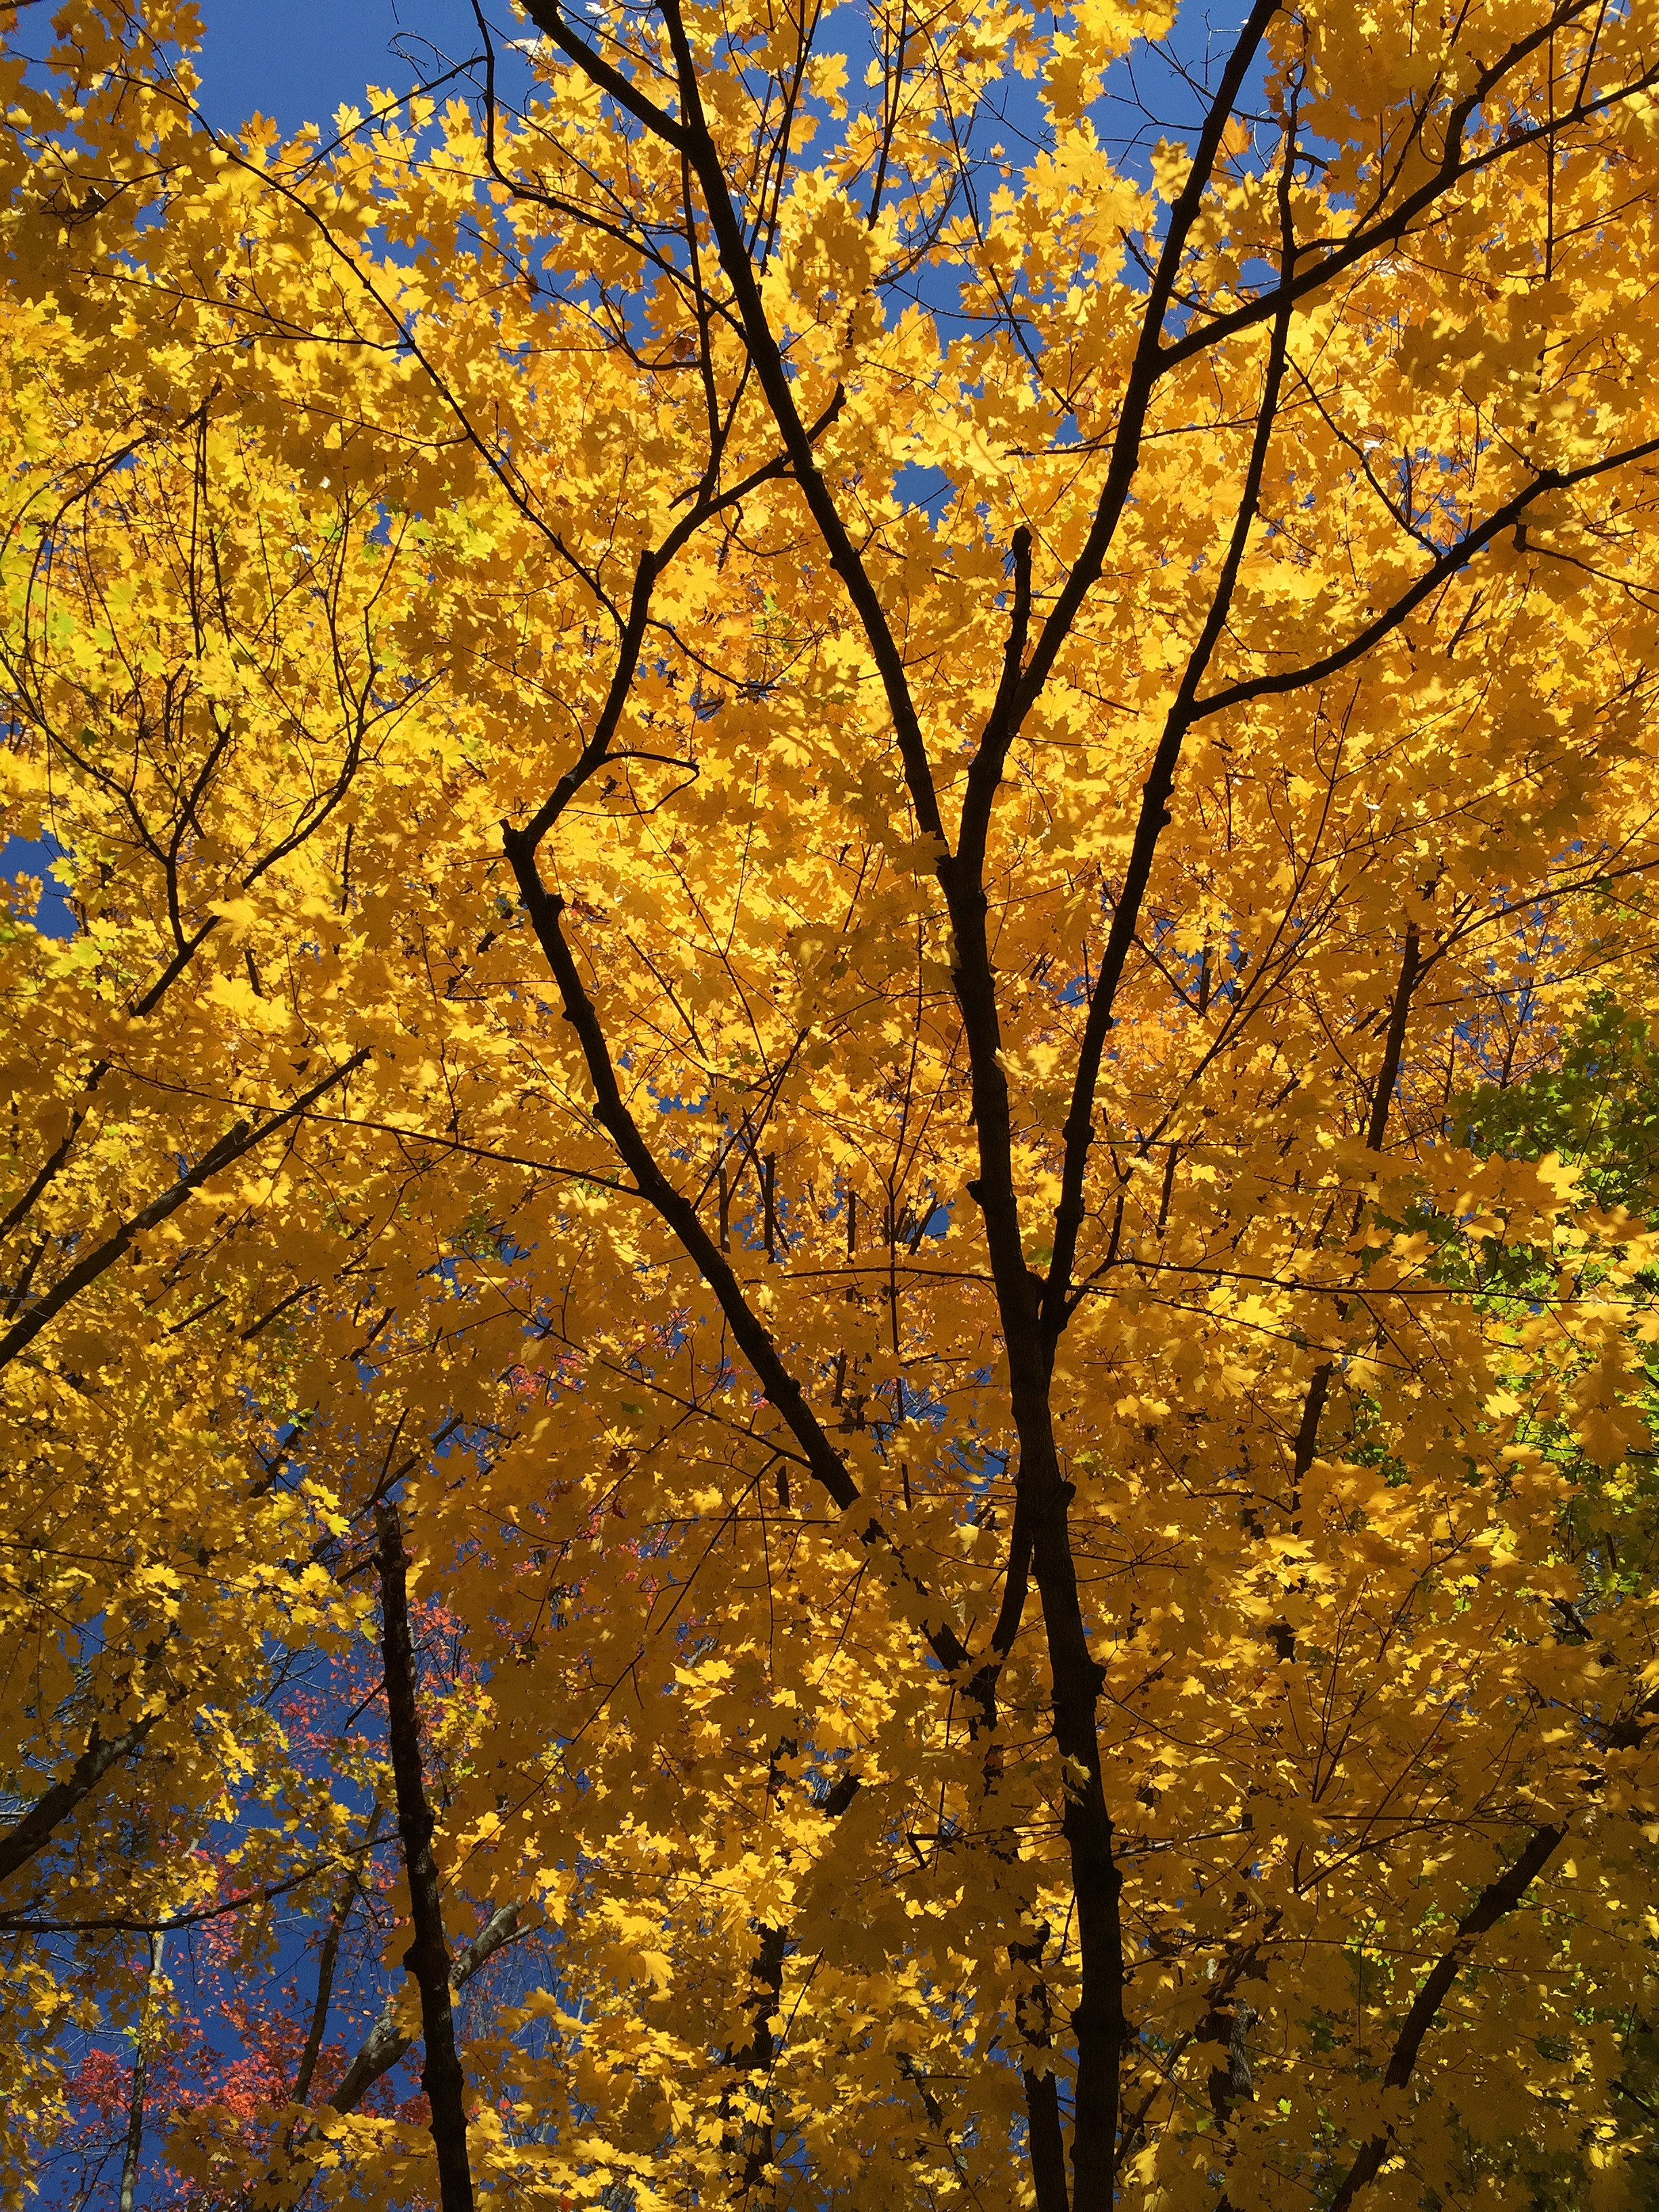 file2016 11 05 11 54 56 view up into the canopy of a norway maple during autumn near the west end of brenwal avenue in ewing mercer county new jerseyjpg - Orange Canopy 2016